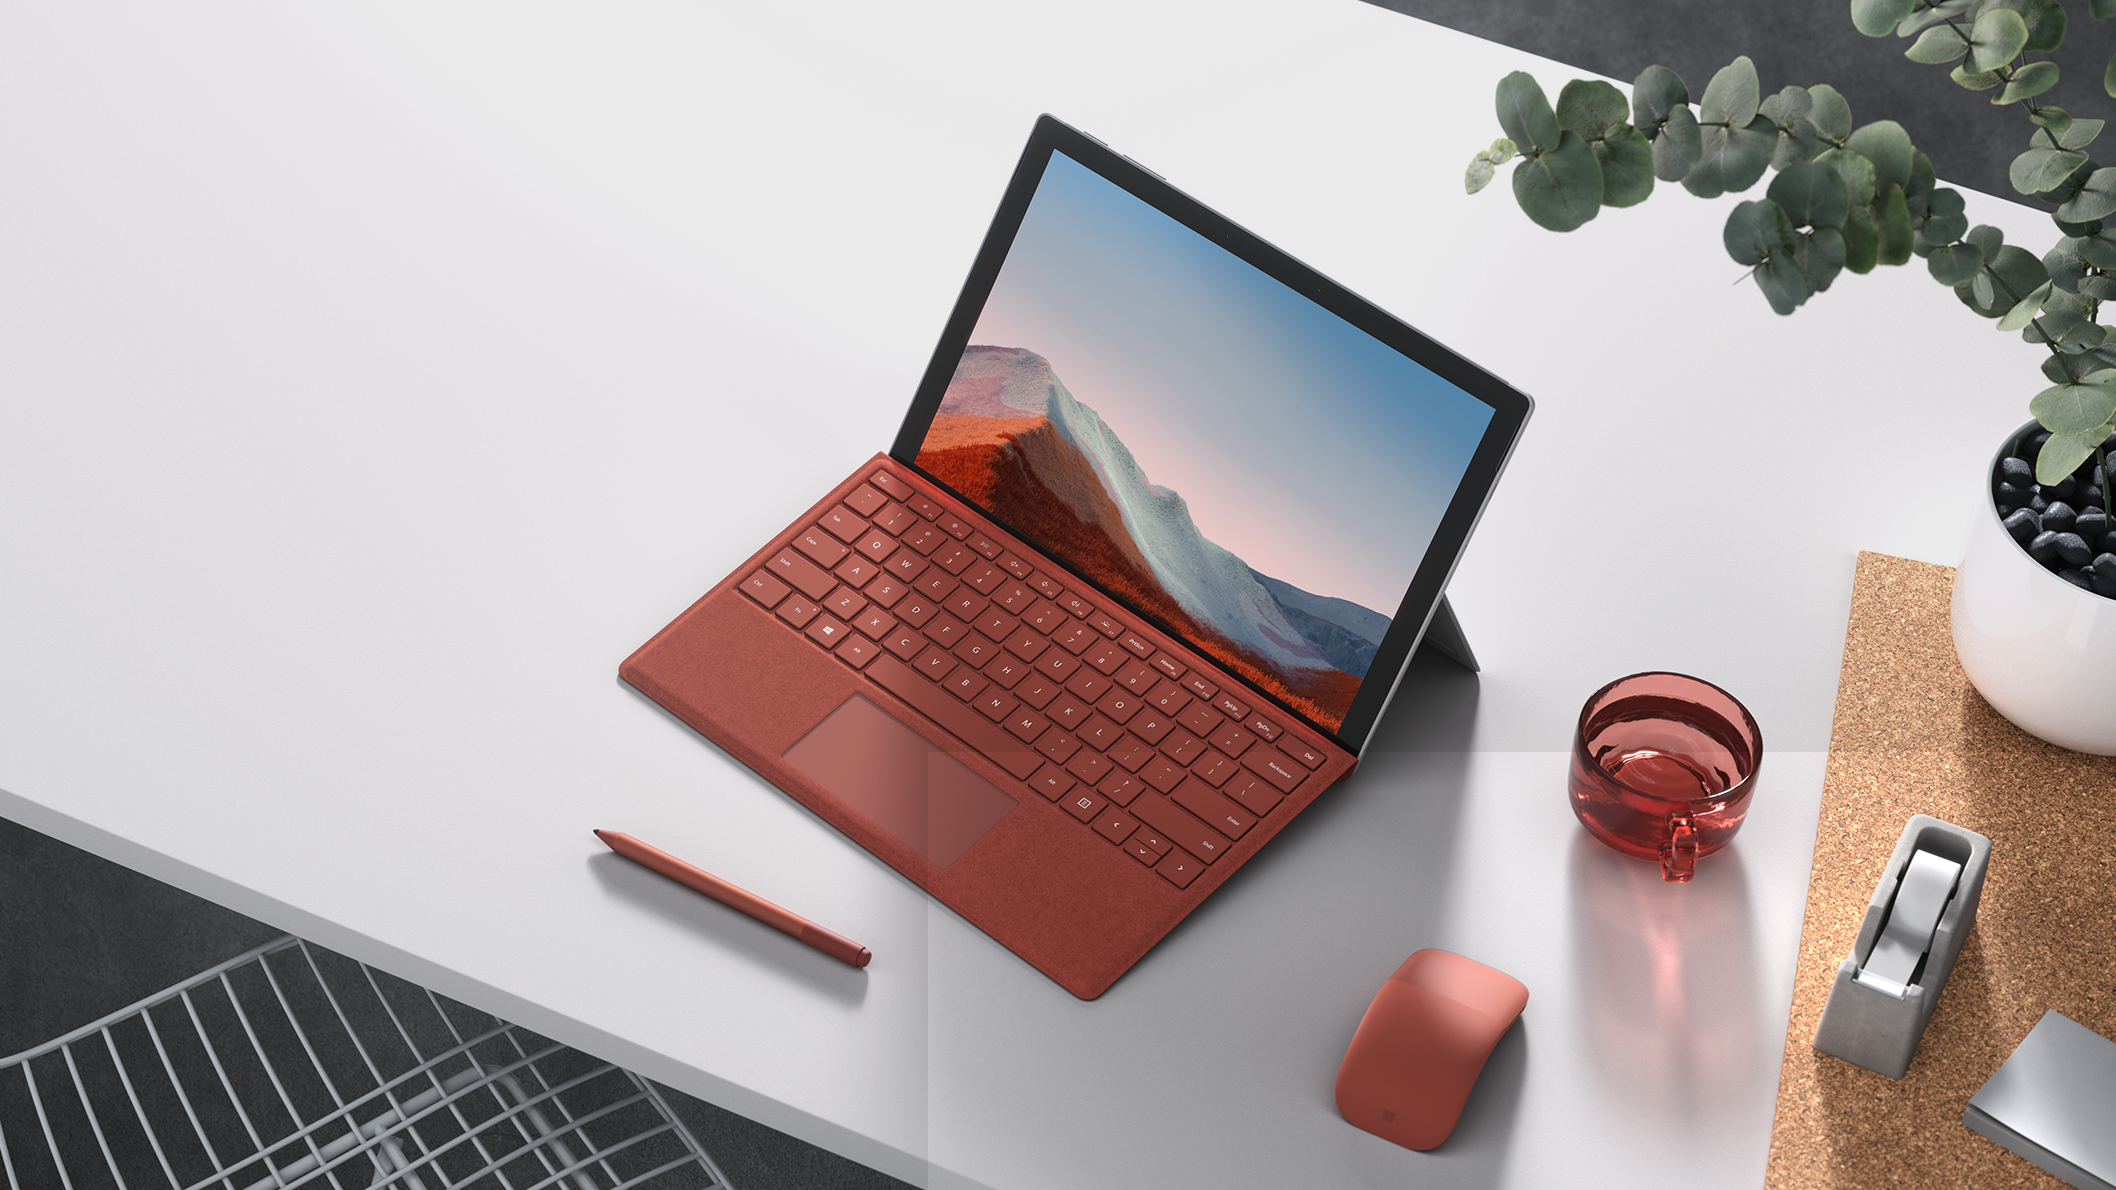 A Surface Pro 7+ in laptop mode with poppy red typepad on a desk.